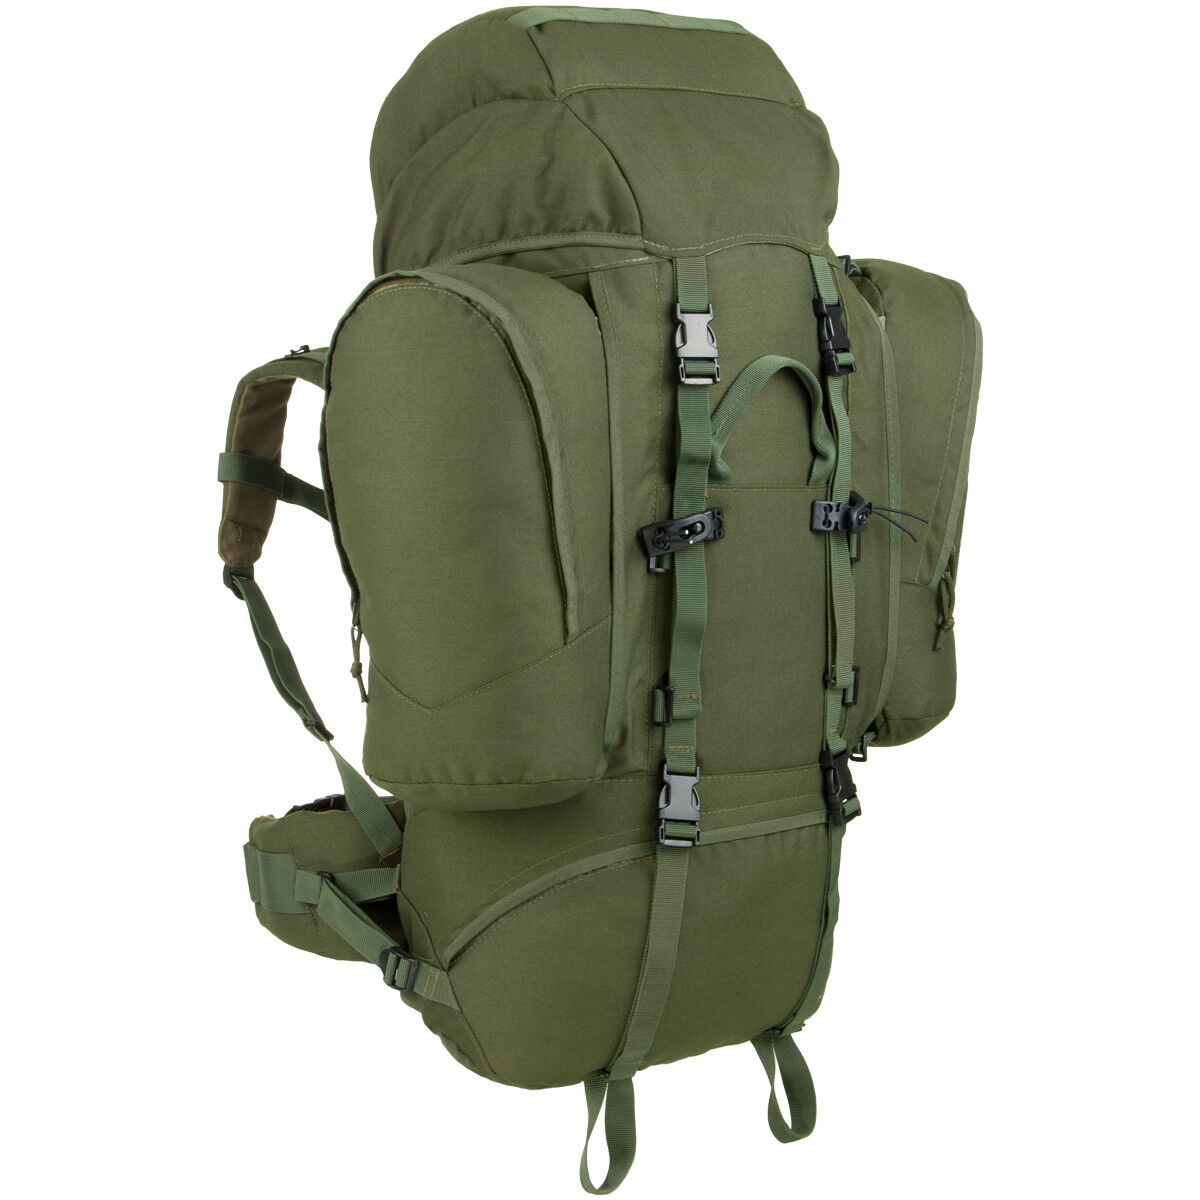 MFH Outdoor Zaino Alpin 110 Outdoor MFH Trekking Hiking Campeggio Pesca Pattuglia OD Verde 1b58fb